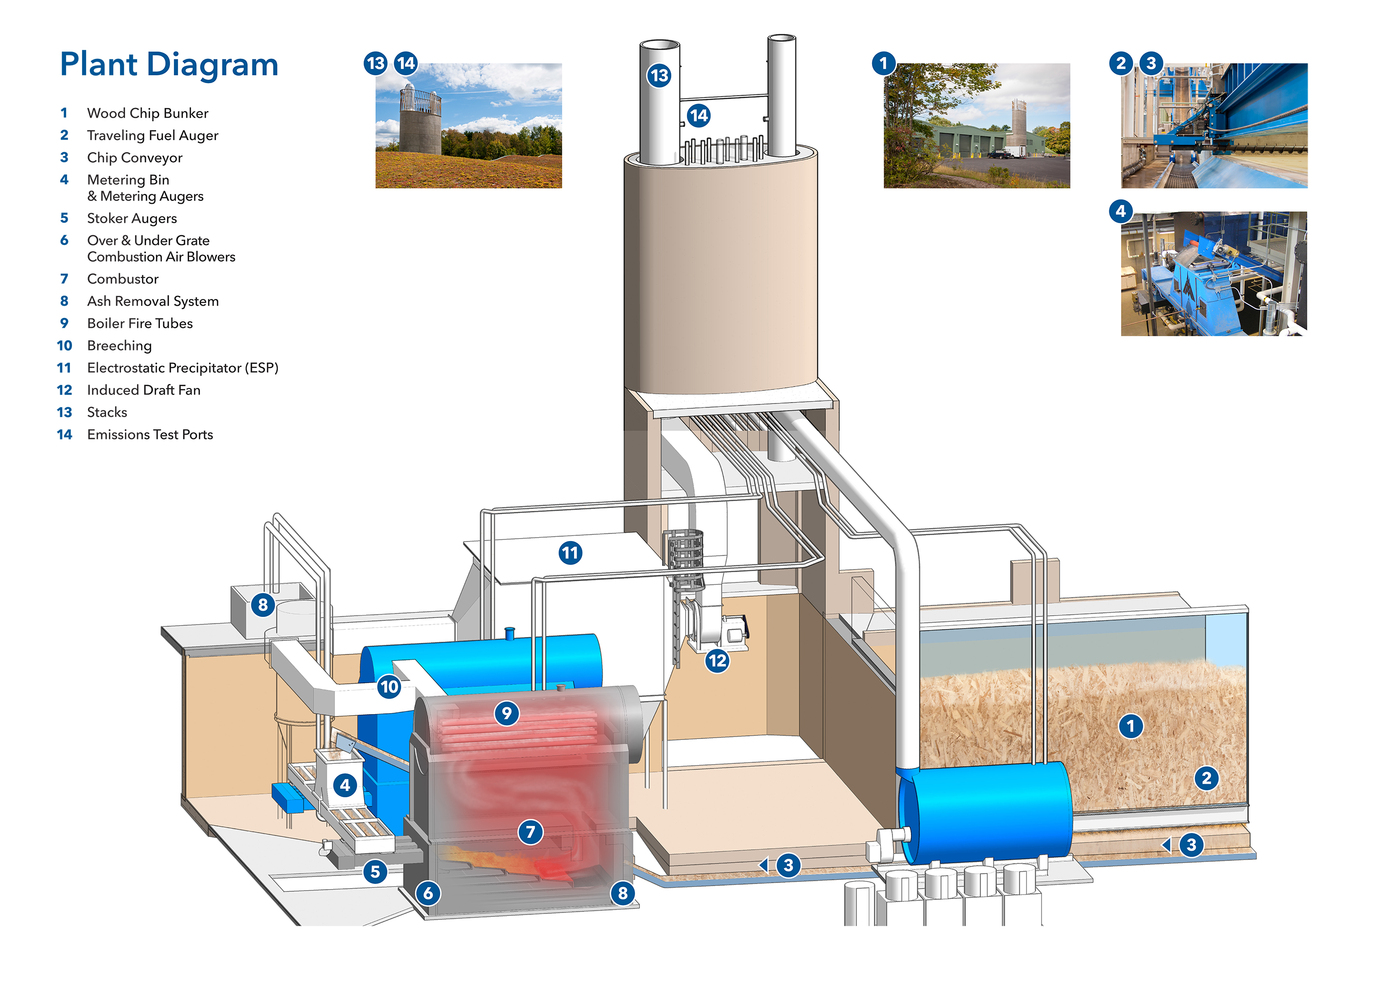 Biomass Power Station Diagram Wiring And Ebooks Plant Circuit Gallery Of Hotchkiss Centerbrook Architects Rh Archdaily Com Energy Schematic